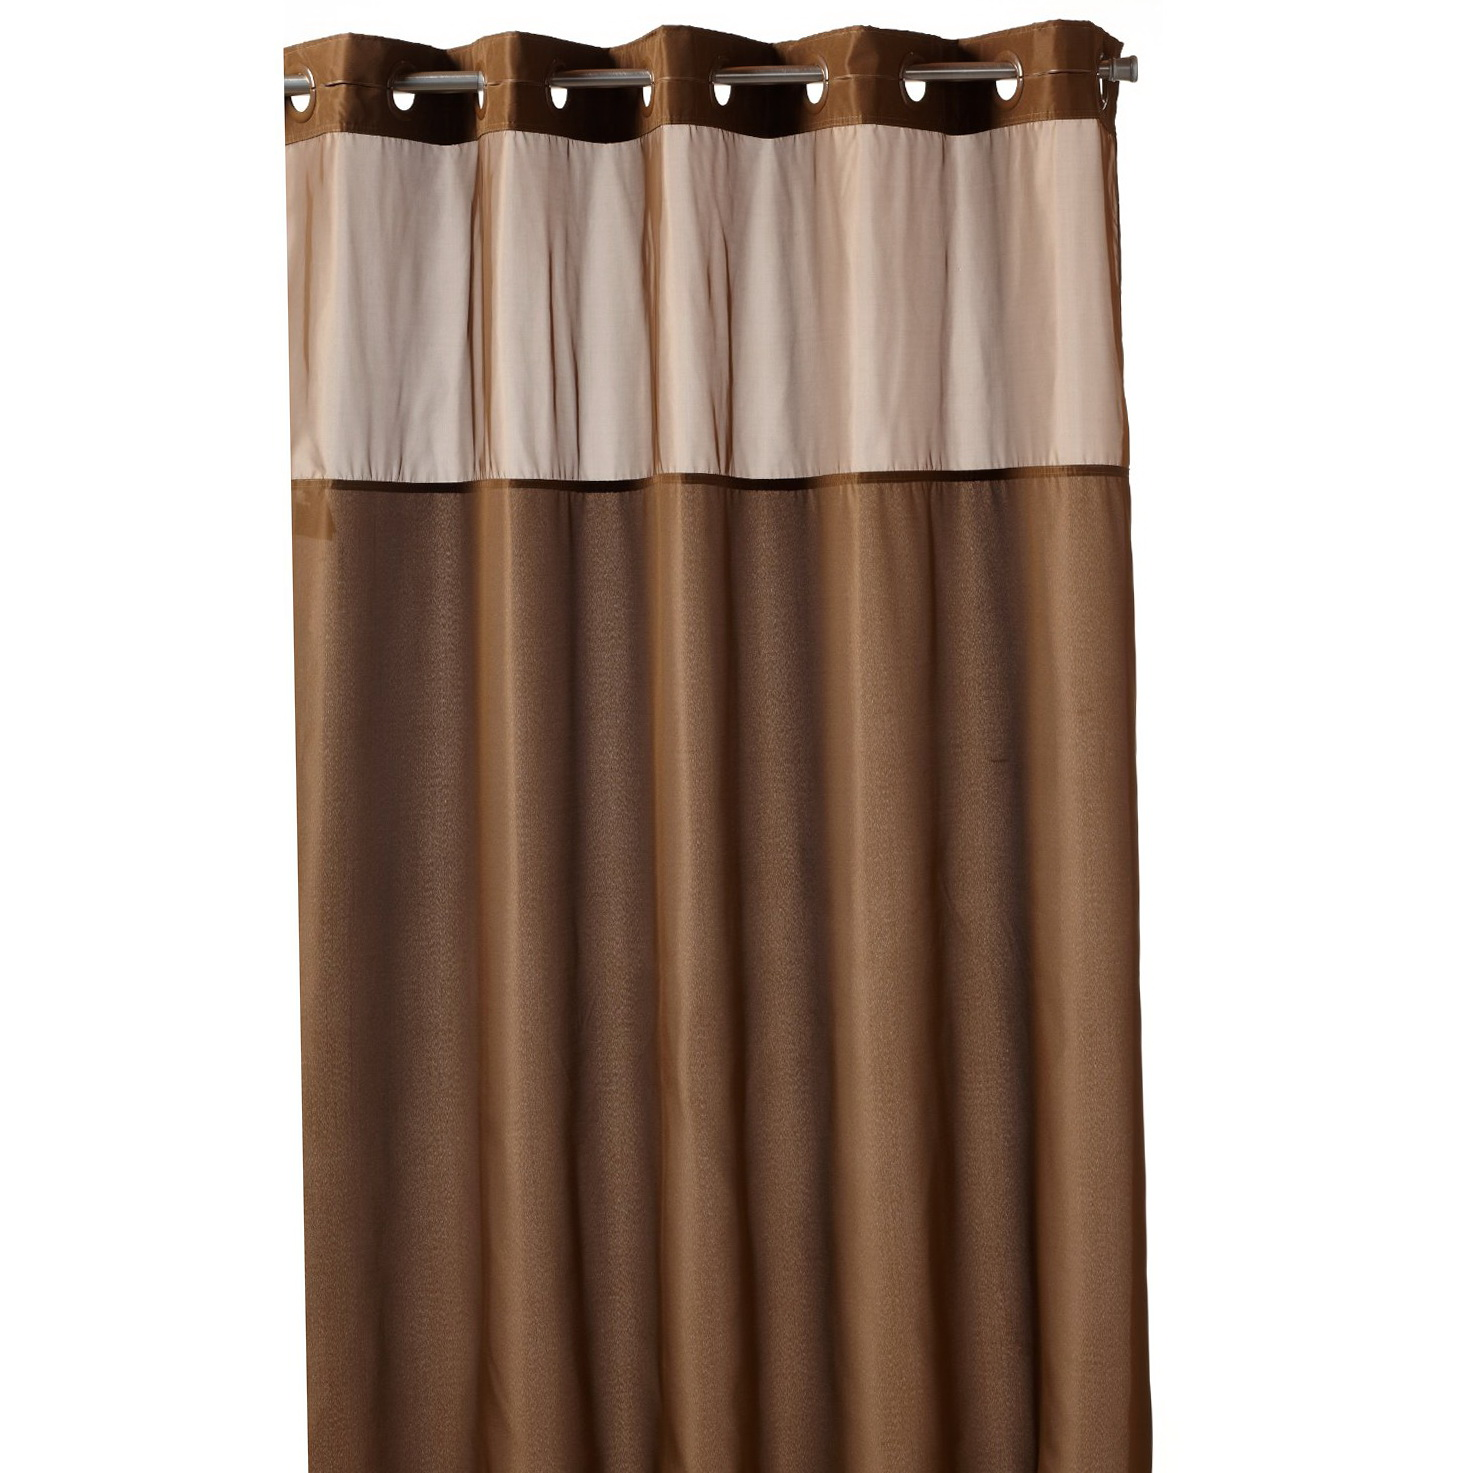 Fashion shower curtain by lush decor brown and pink for Red and brown bathroom sets